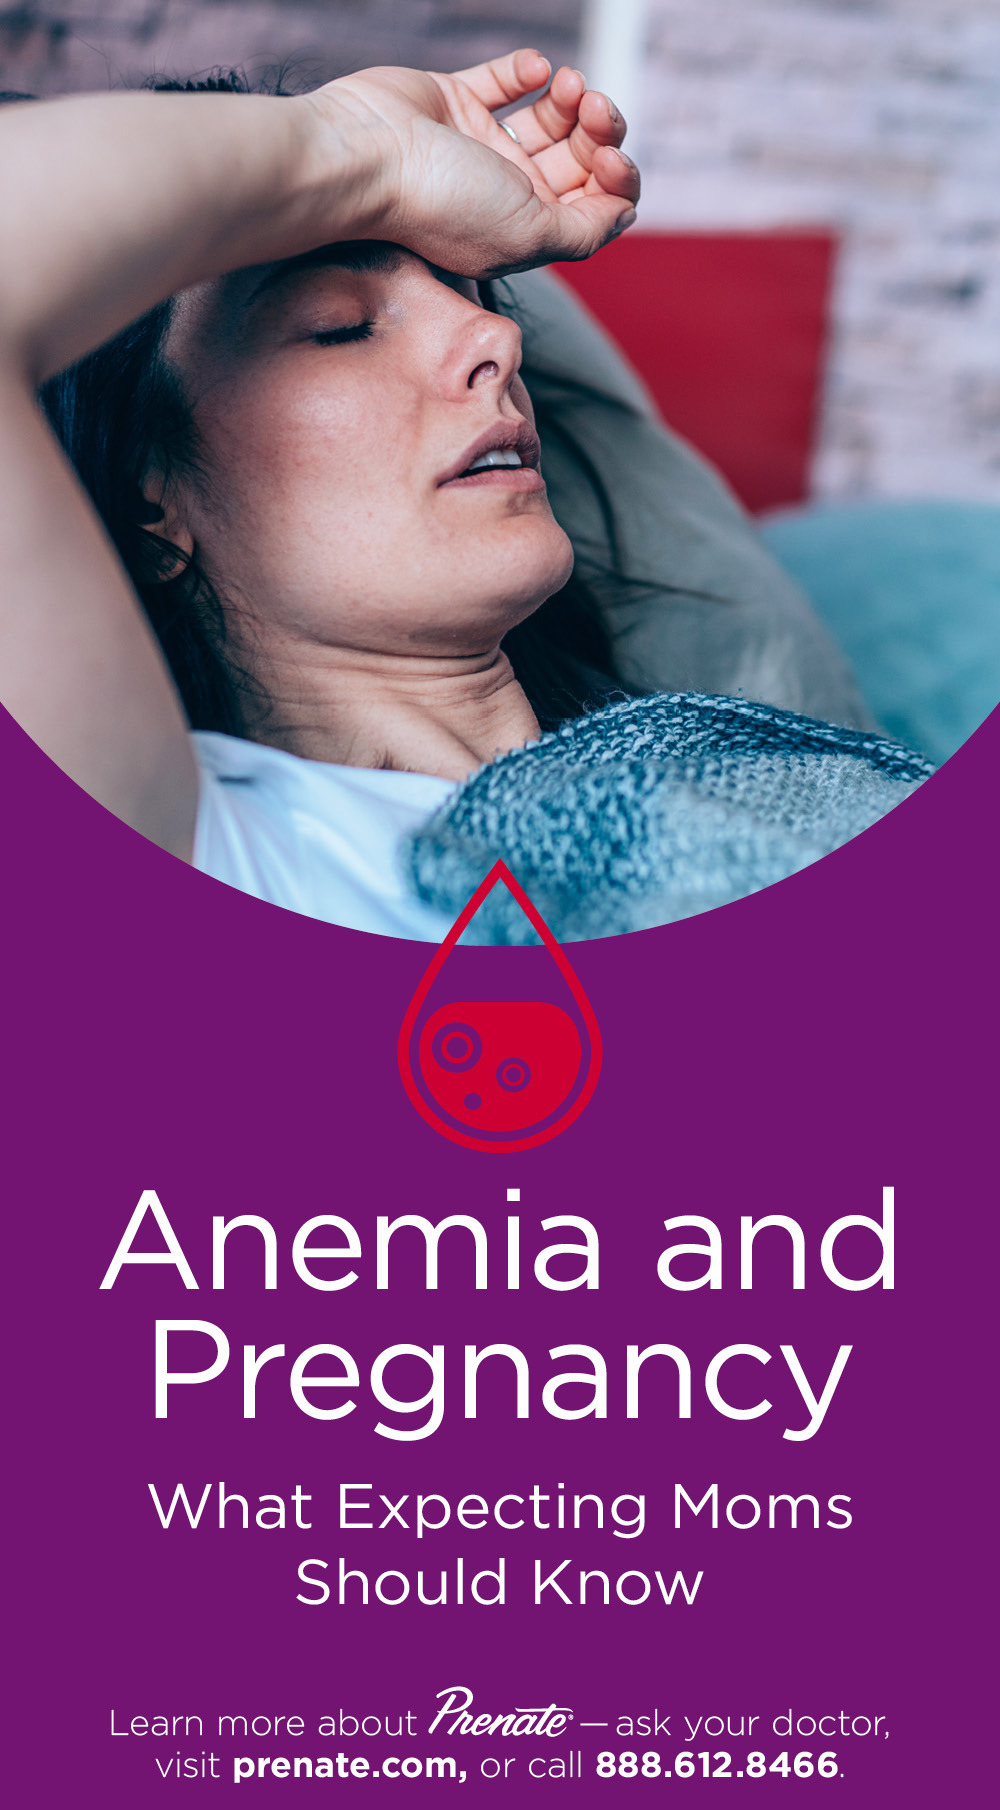 Anemia and pregnancy graphic